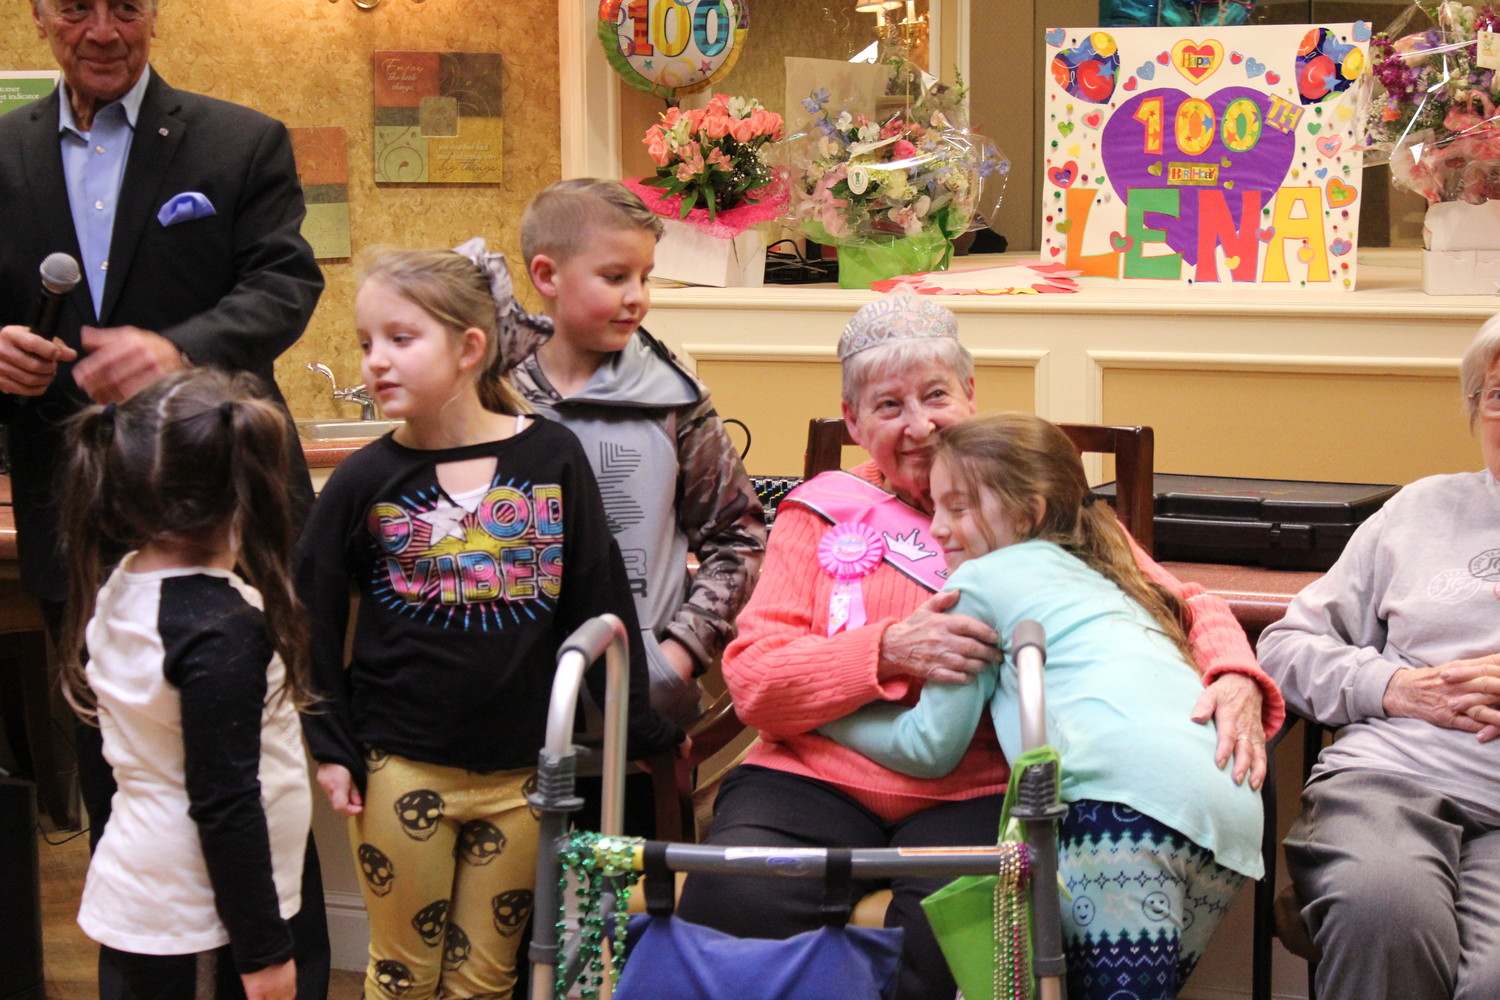 Lena Conte was surprised by her great grandchildren Gianna, left, Alexa, Richie and Lily for her 100th birthday celebration at the Lynbrook Atria on March 12.